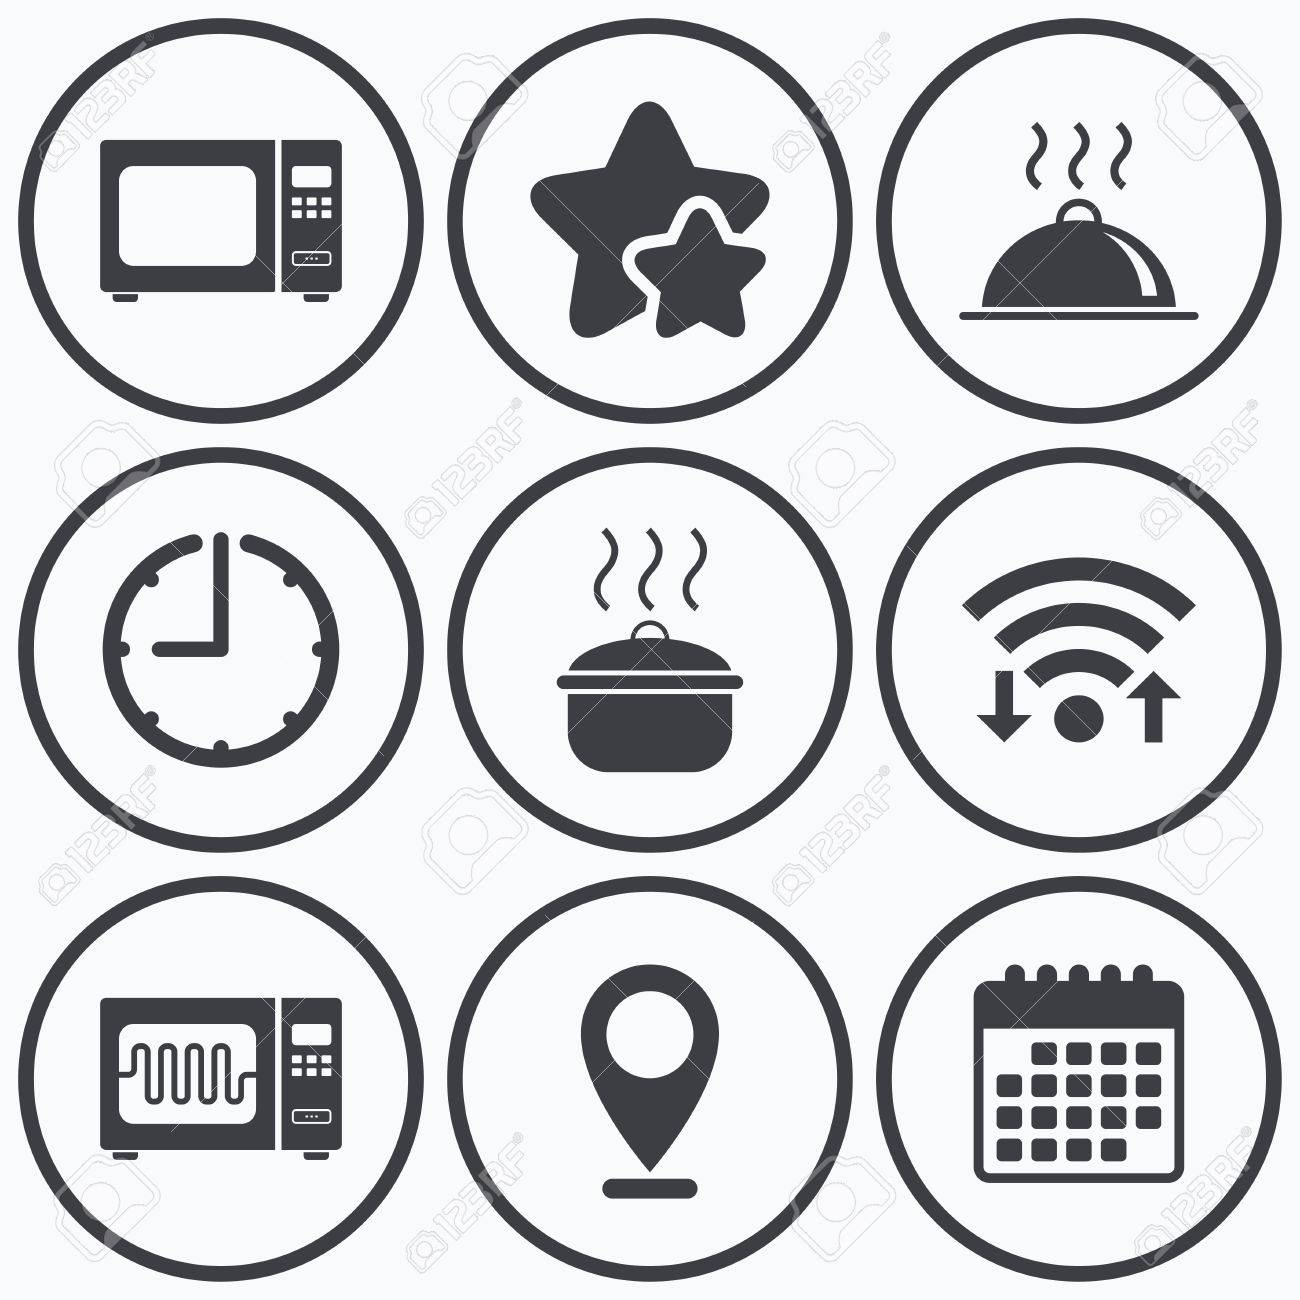 Clock Wifi And Stars Icons Microwave Grill Oven Icons Cooking